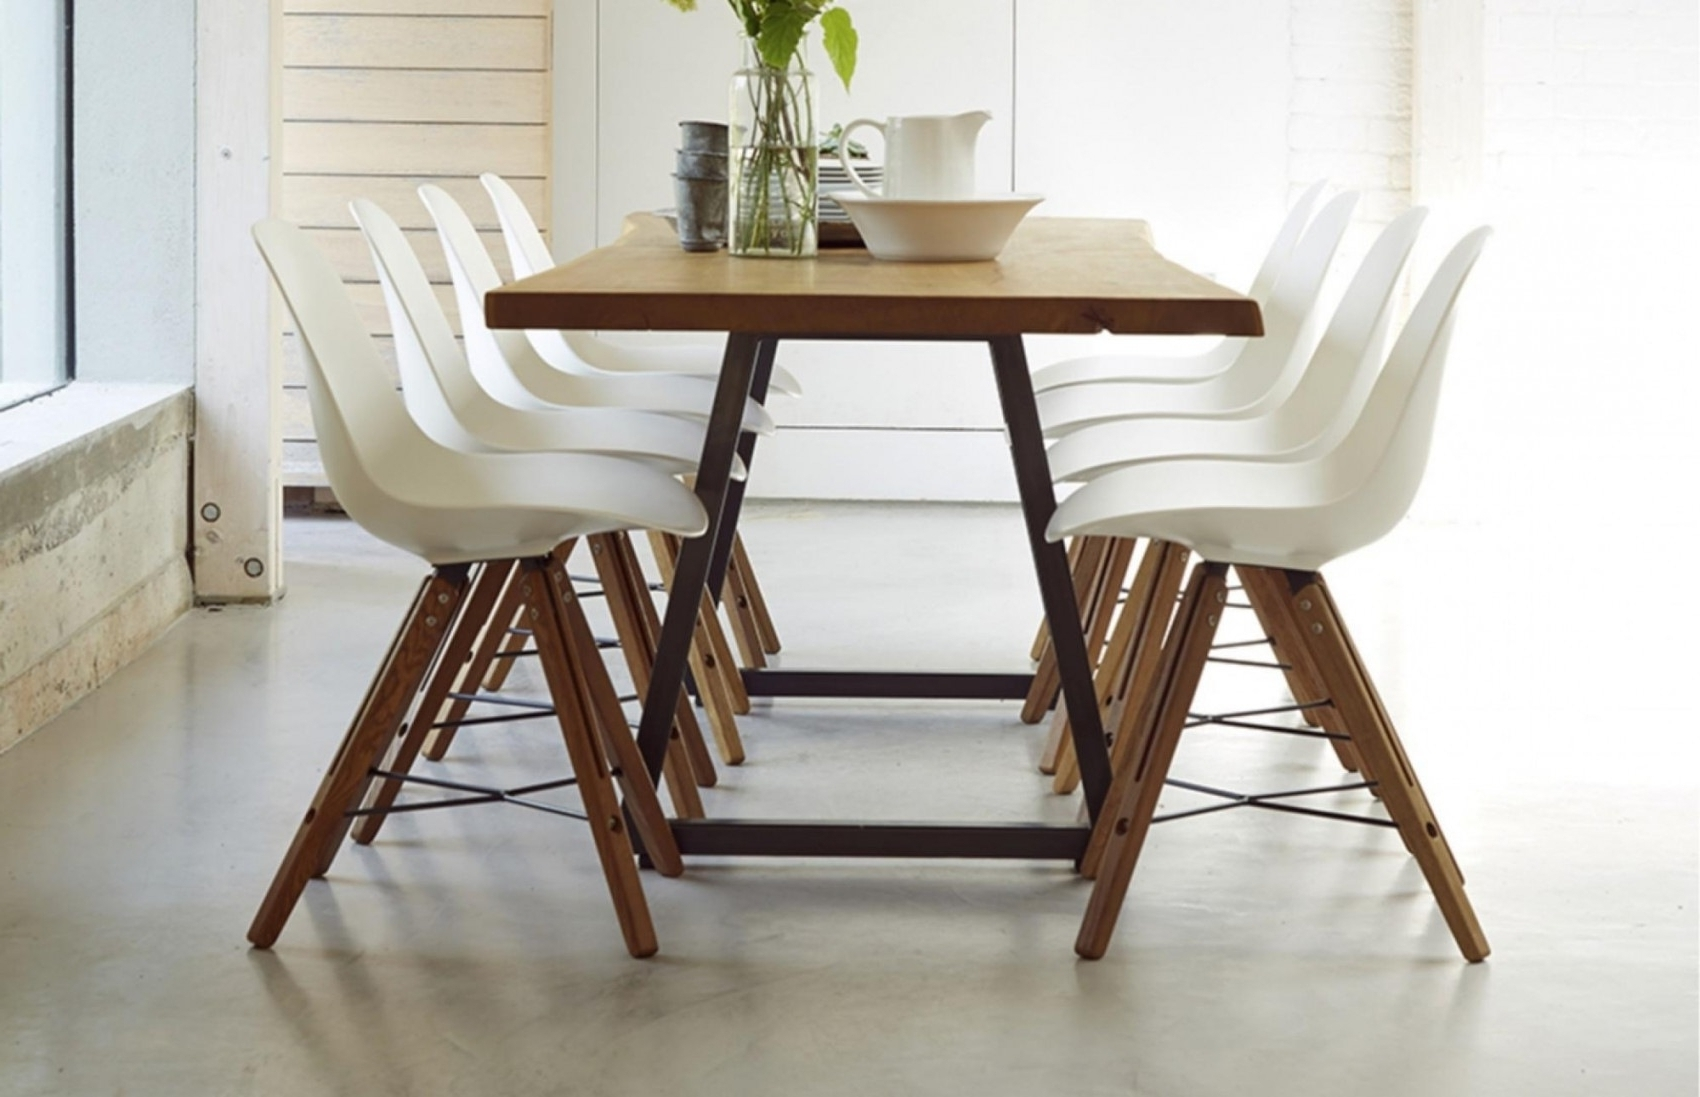 Widely Used 8 Seater Extendable Glass Dining Table Intended For Extendable Dining Tables With 8 Seats (View 6 of 25)